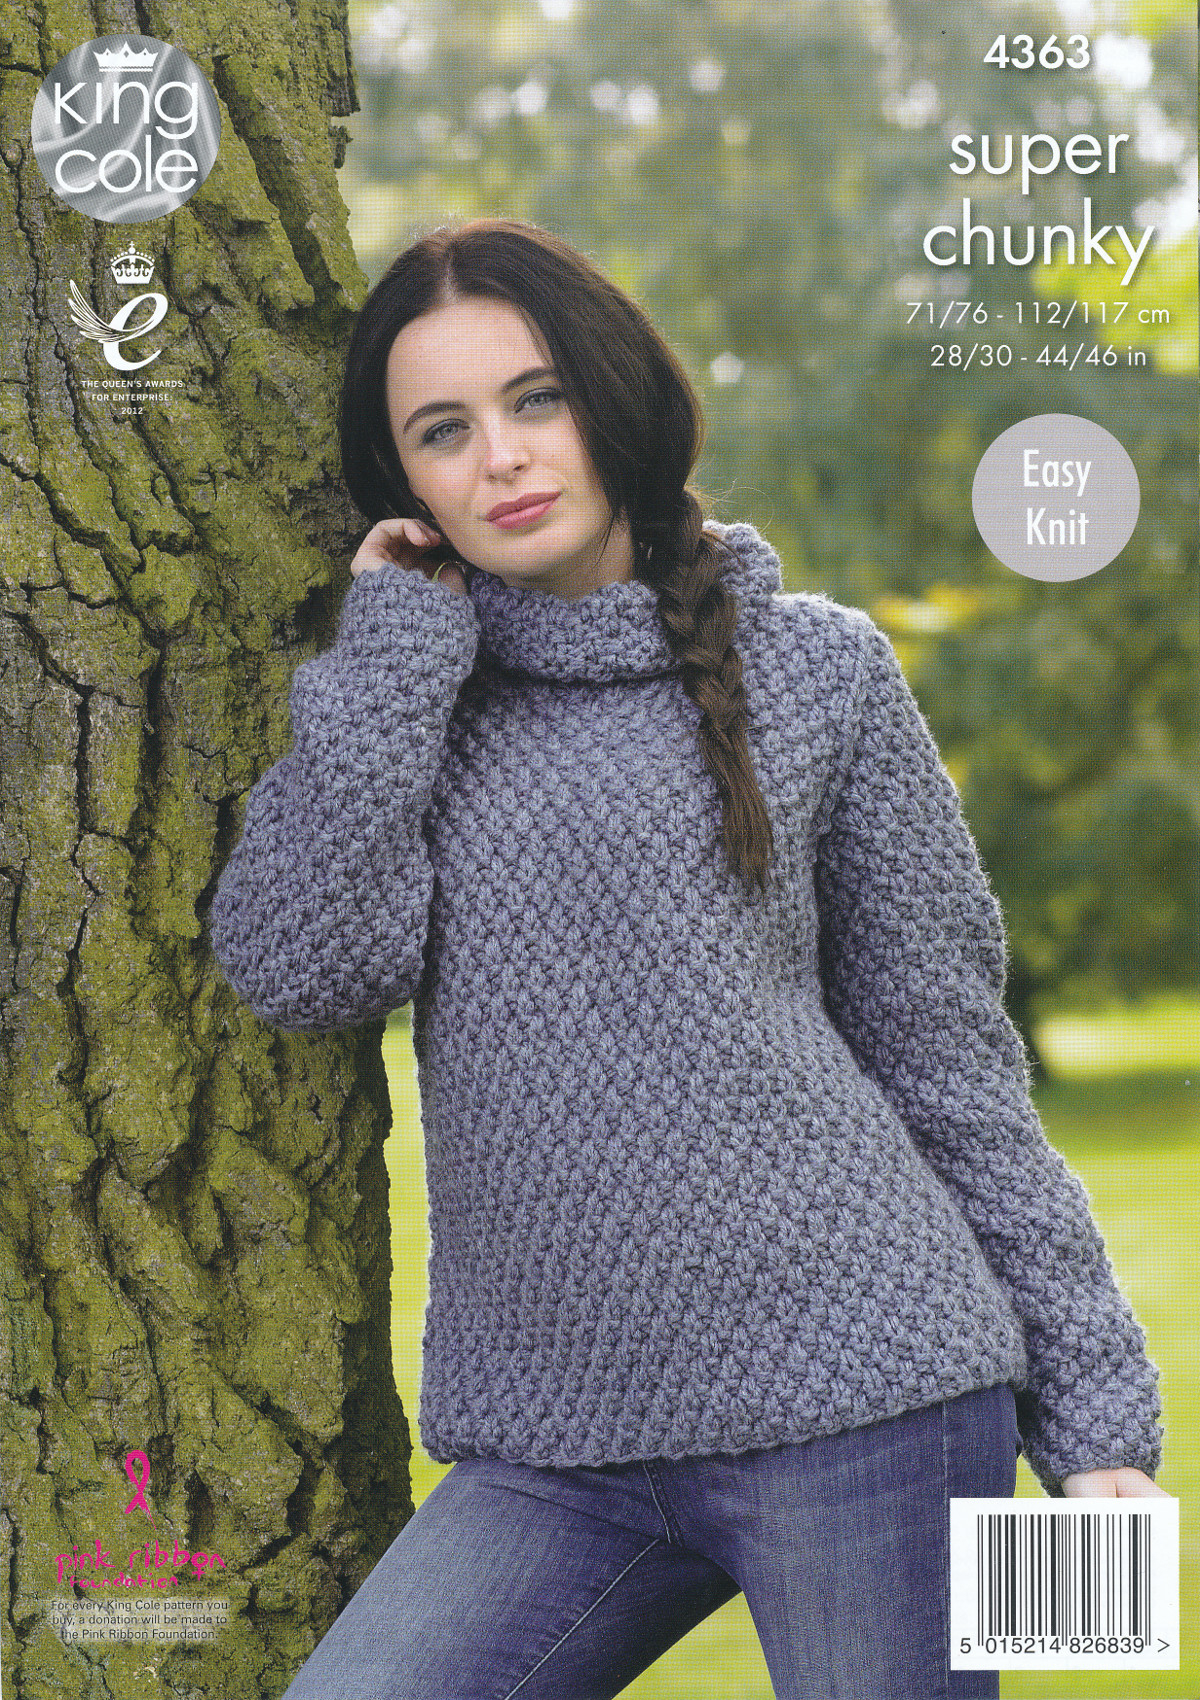 Knit Jumper Pattern Ladies Super Chunky Knitting Pattern King Cole Easy Knit Sweater